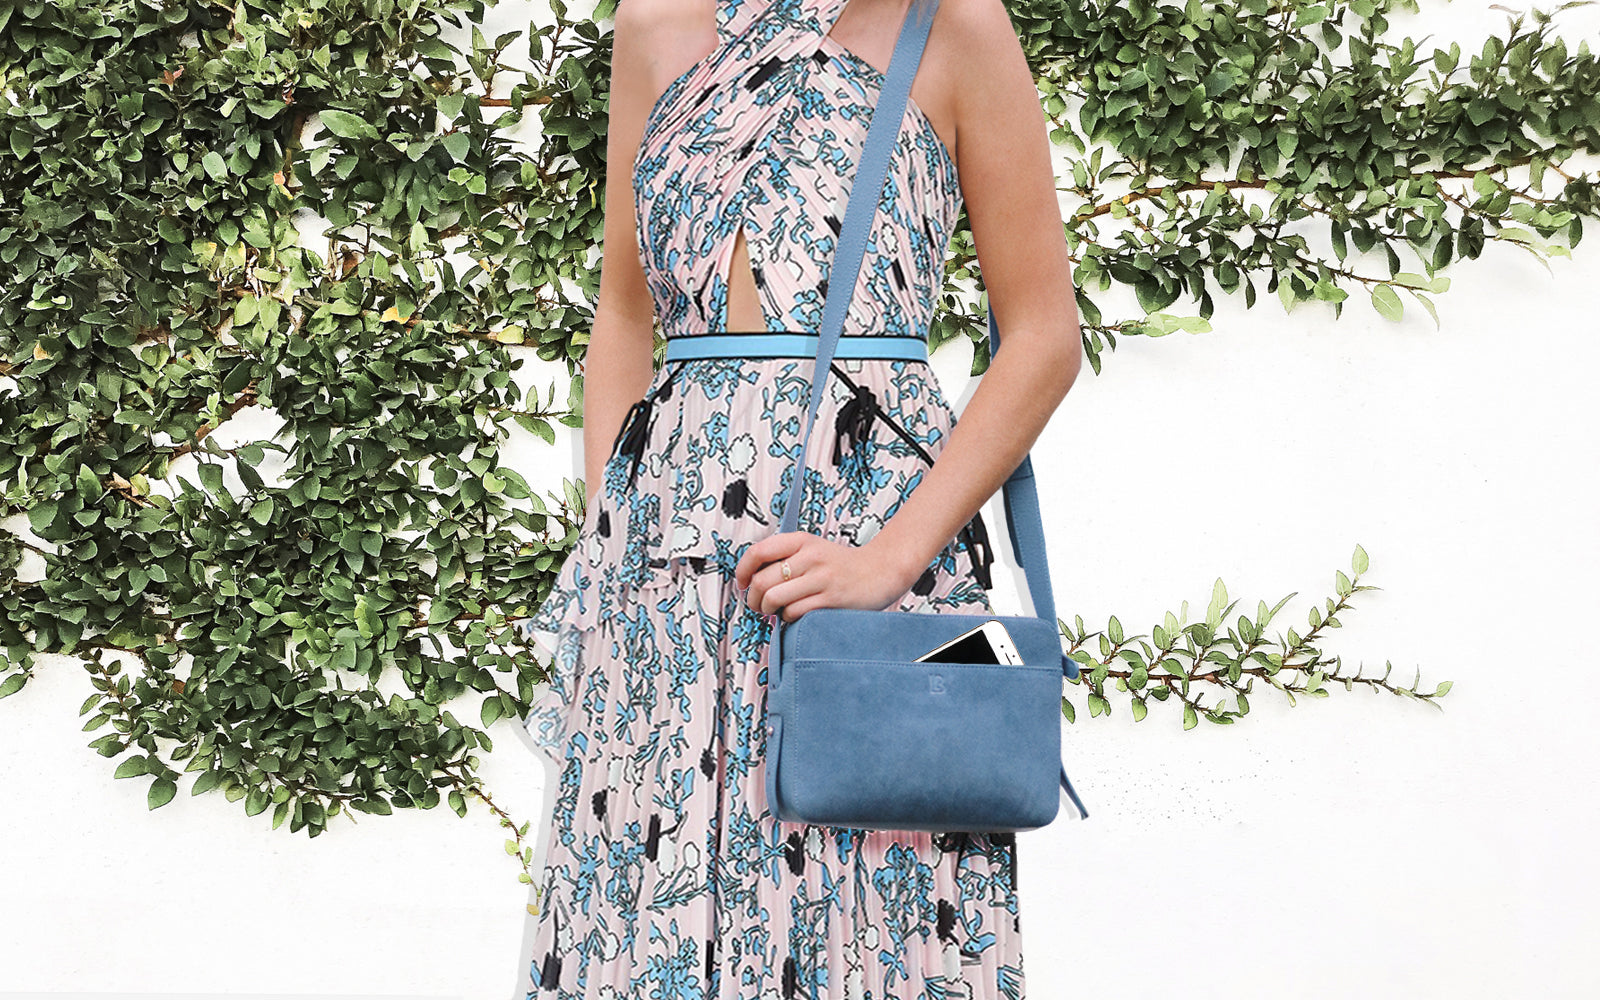 Spring racing bag with phone charger blue bag leather bag